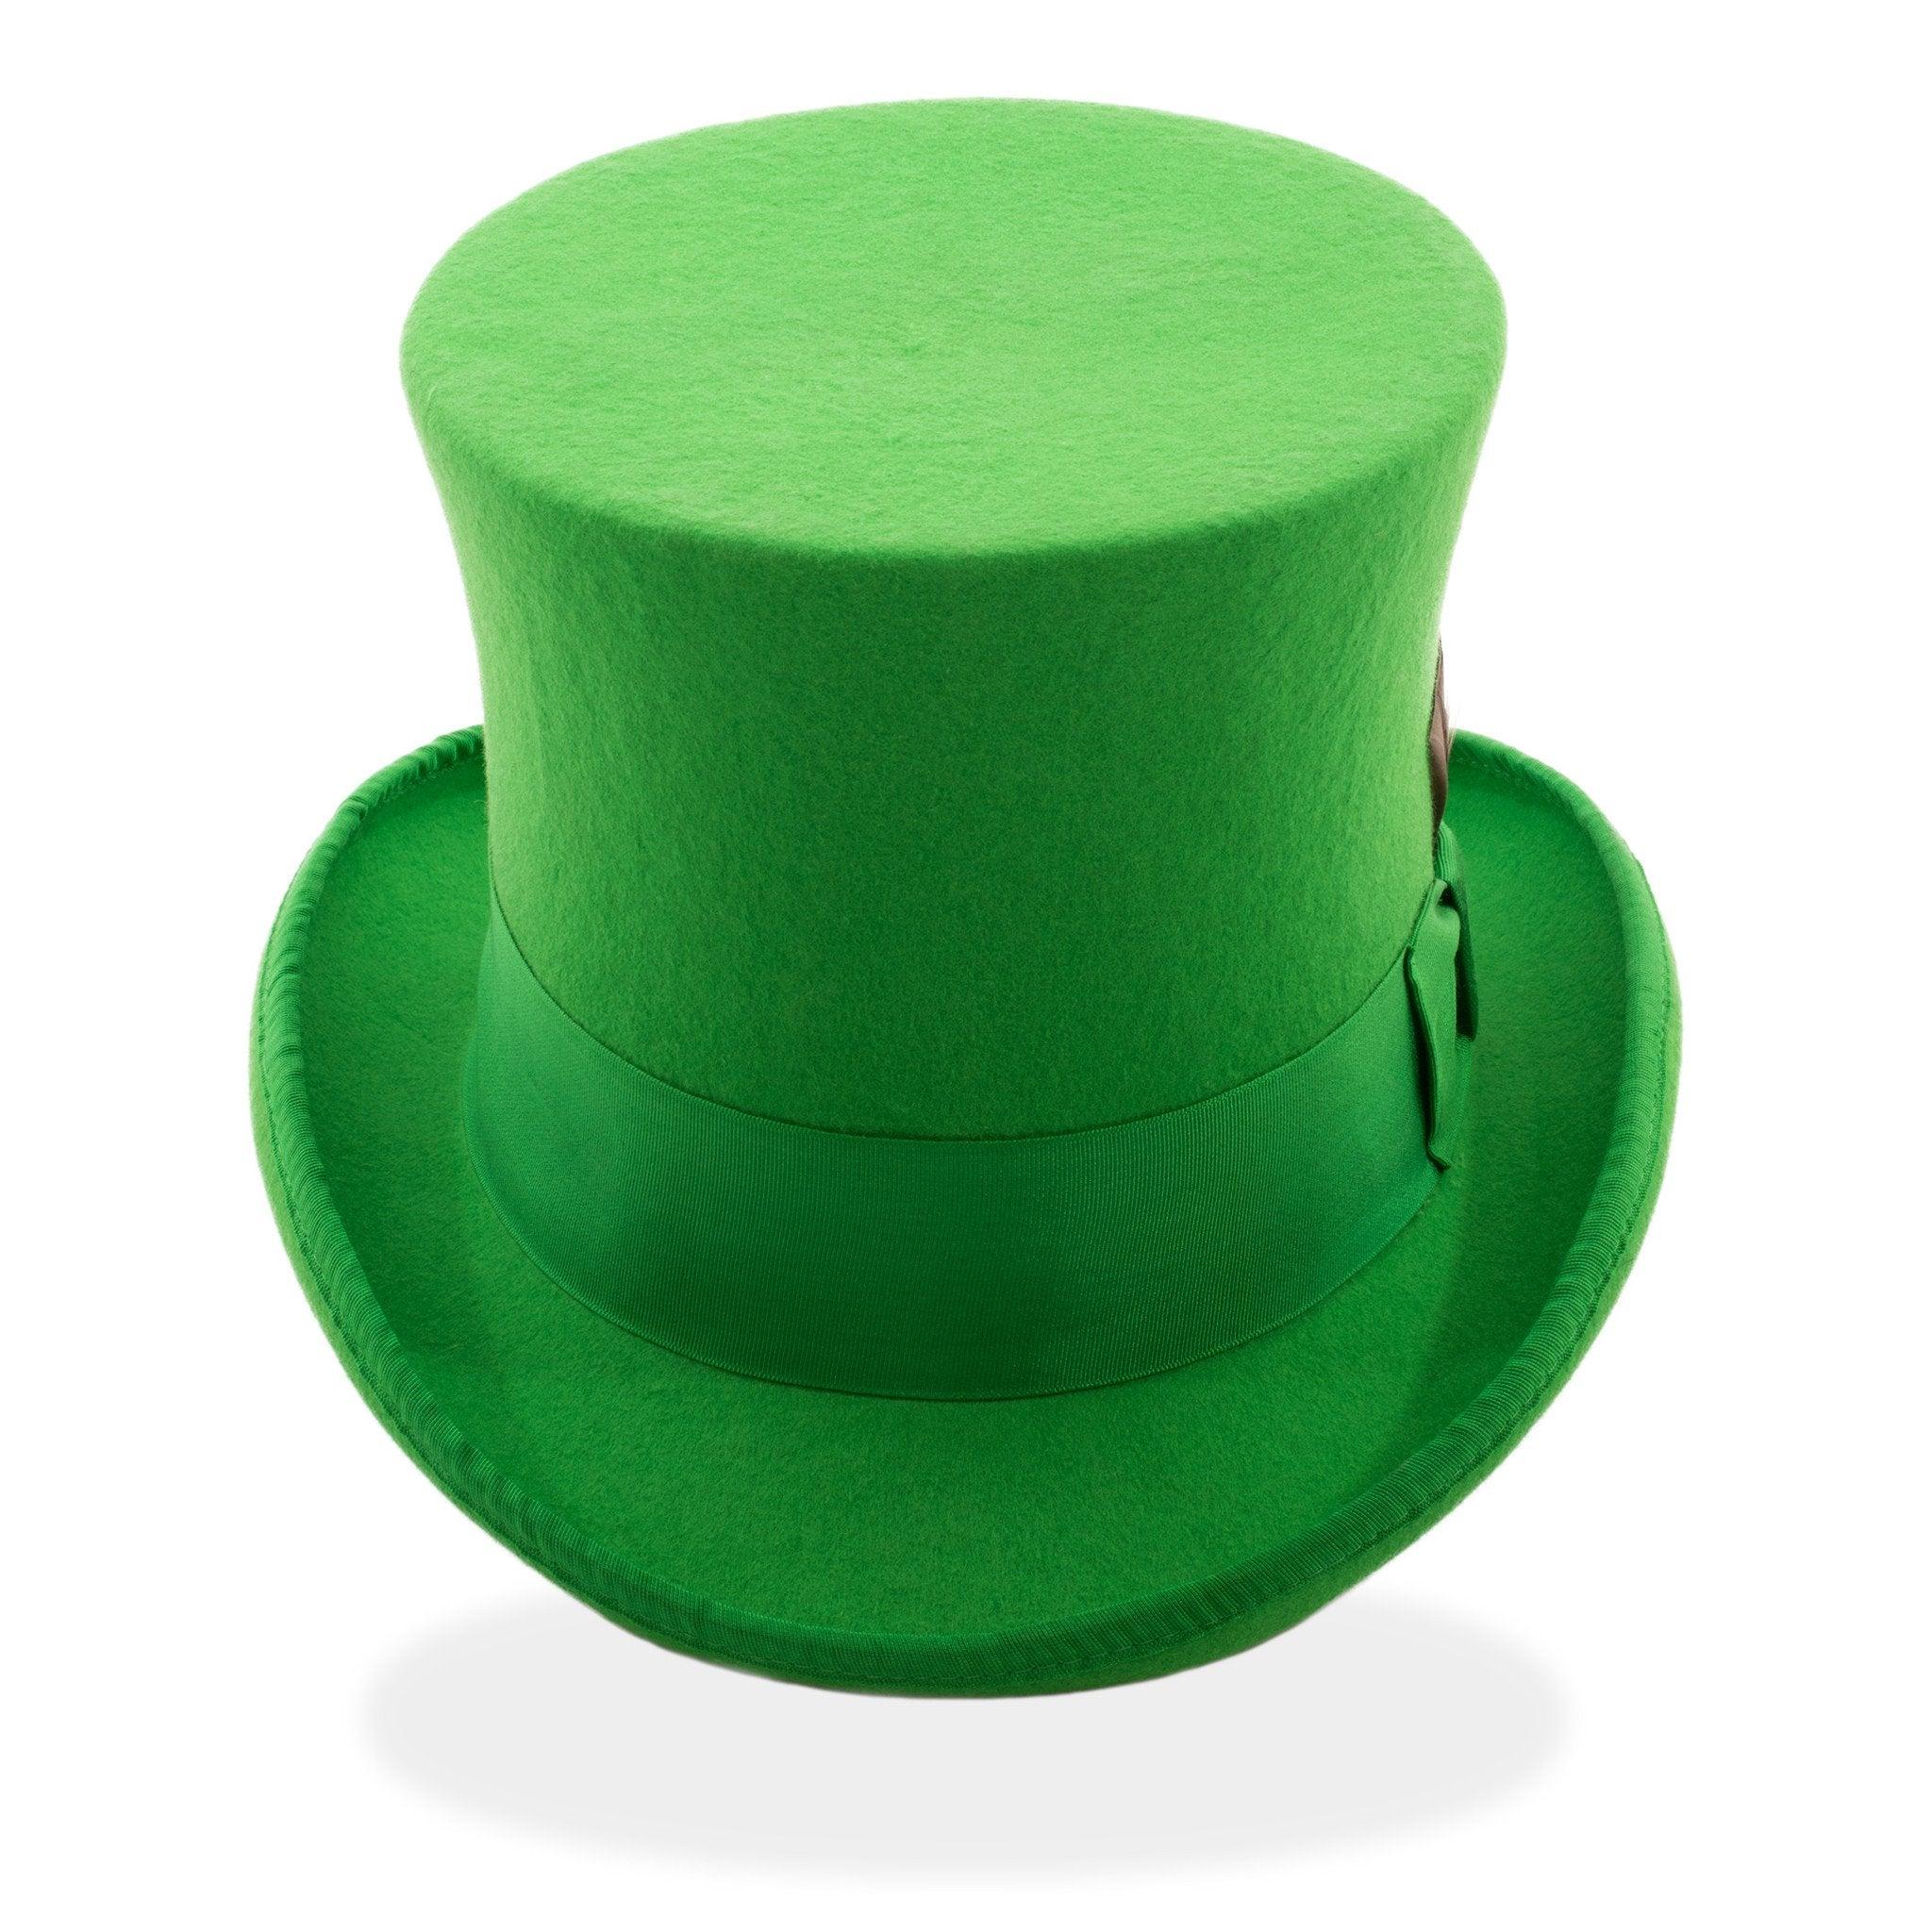 Premium Wool Kelly Green Top Hat - Giorgio's Menswear